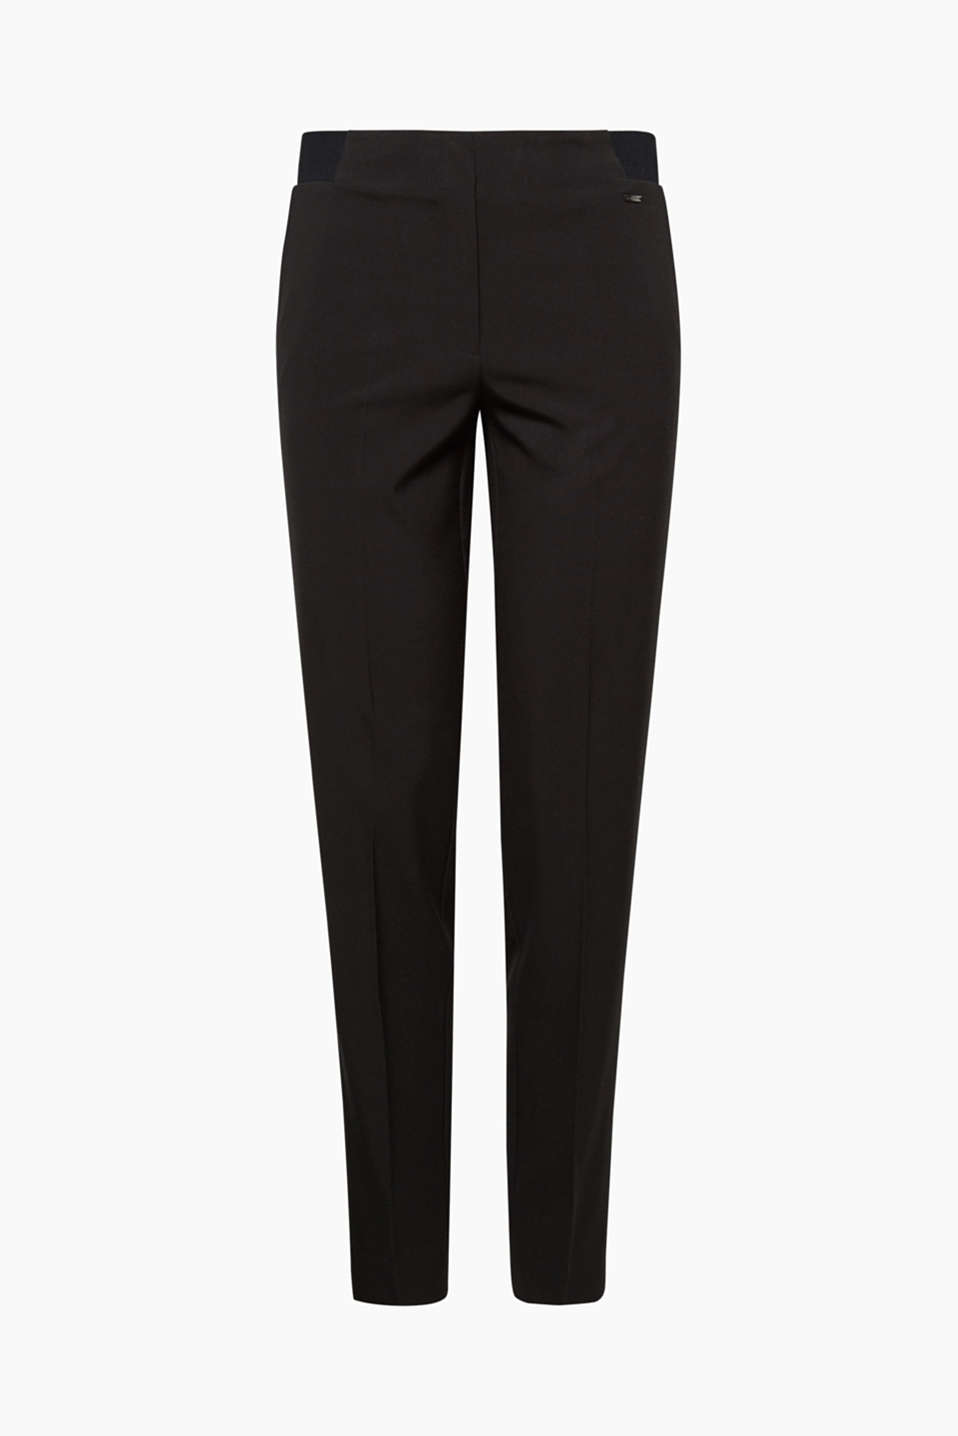 Smart and stylish: these stretch trousers with a higher-rise waistband, pressed pleats and hem turn-ups are both!